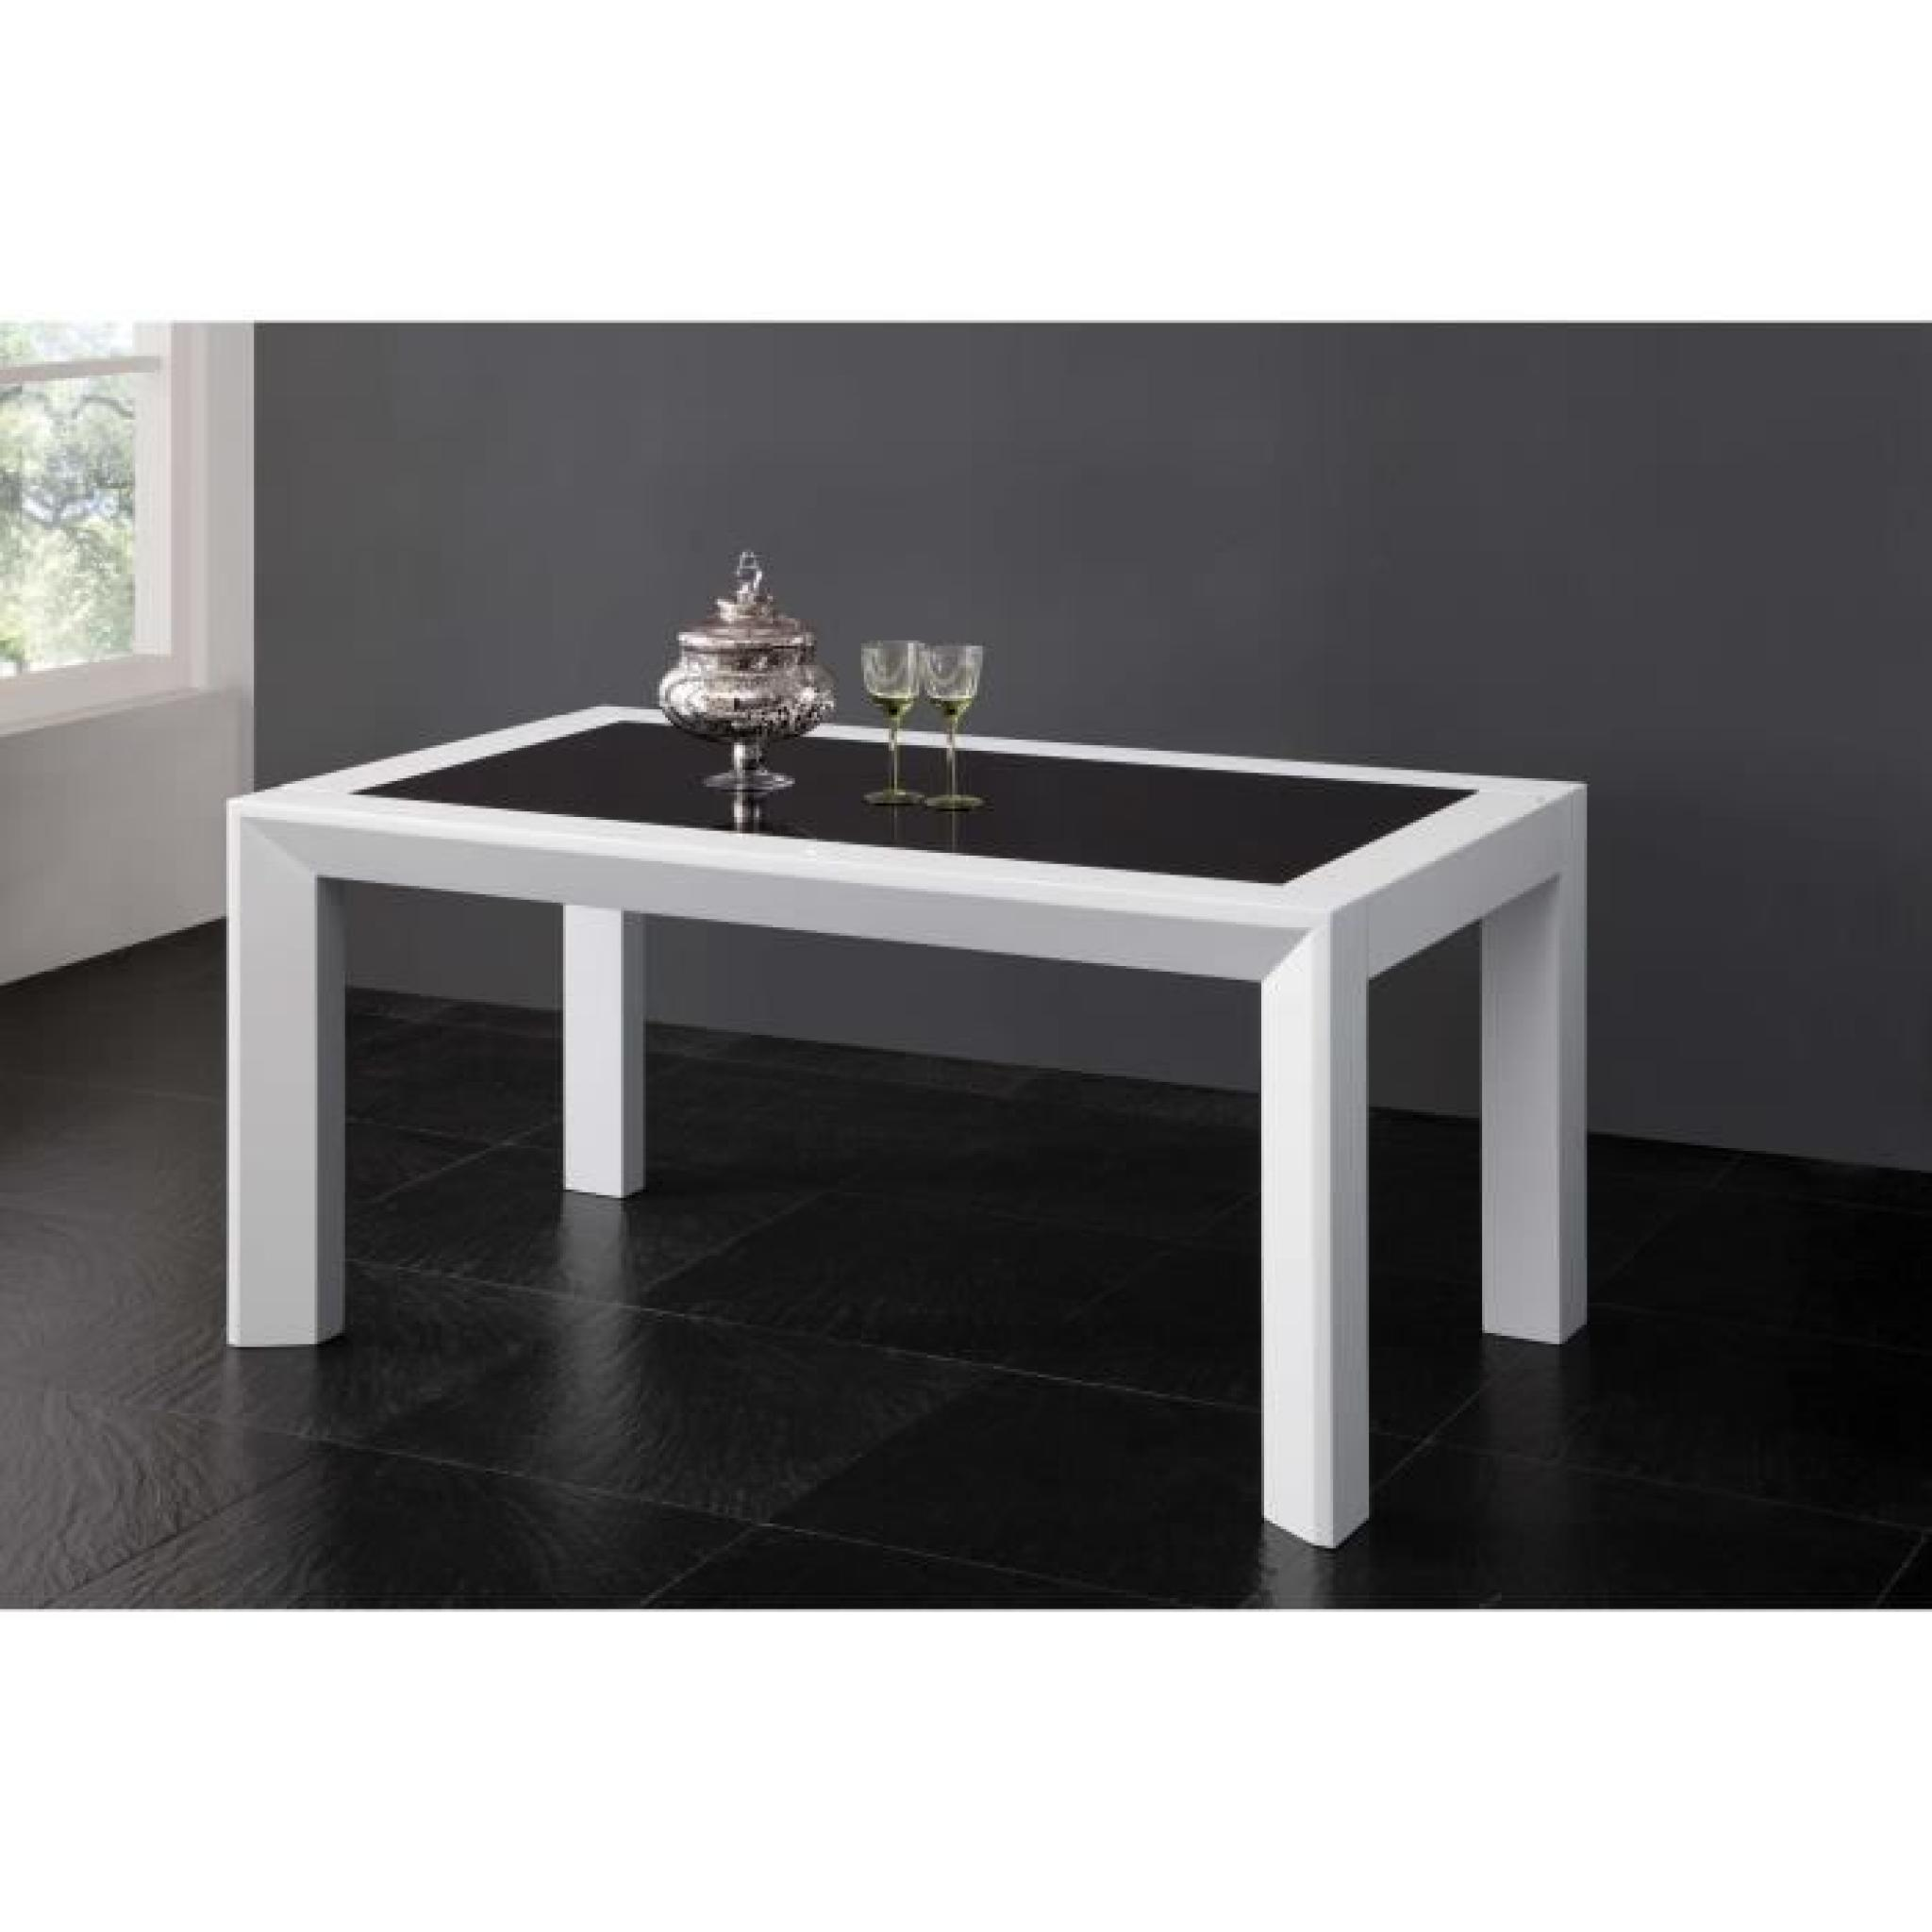 table salle manger 160cm blanc et noir achat vente table salle a manger pas cher couleur. Black Bedroom Furniture Sets. Home Design Ideas